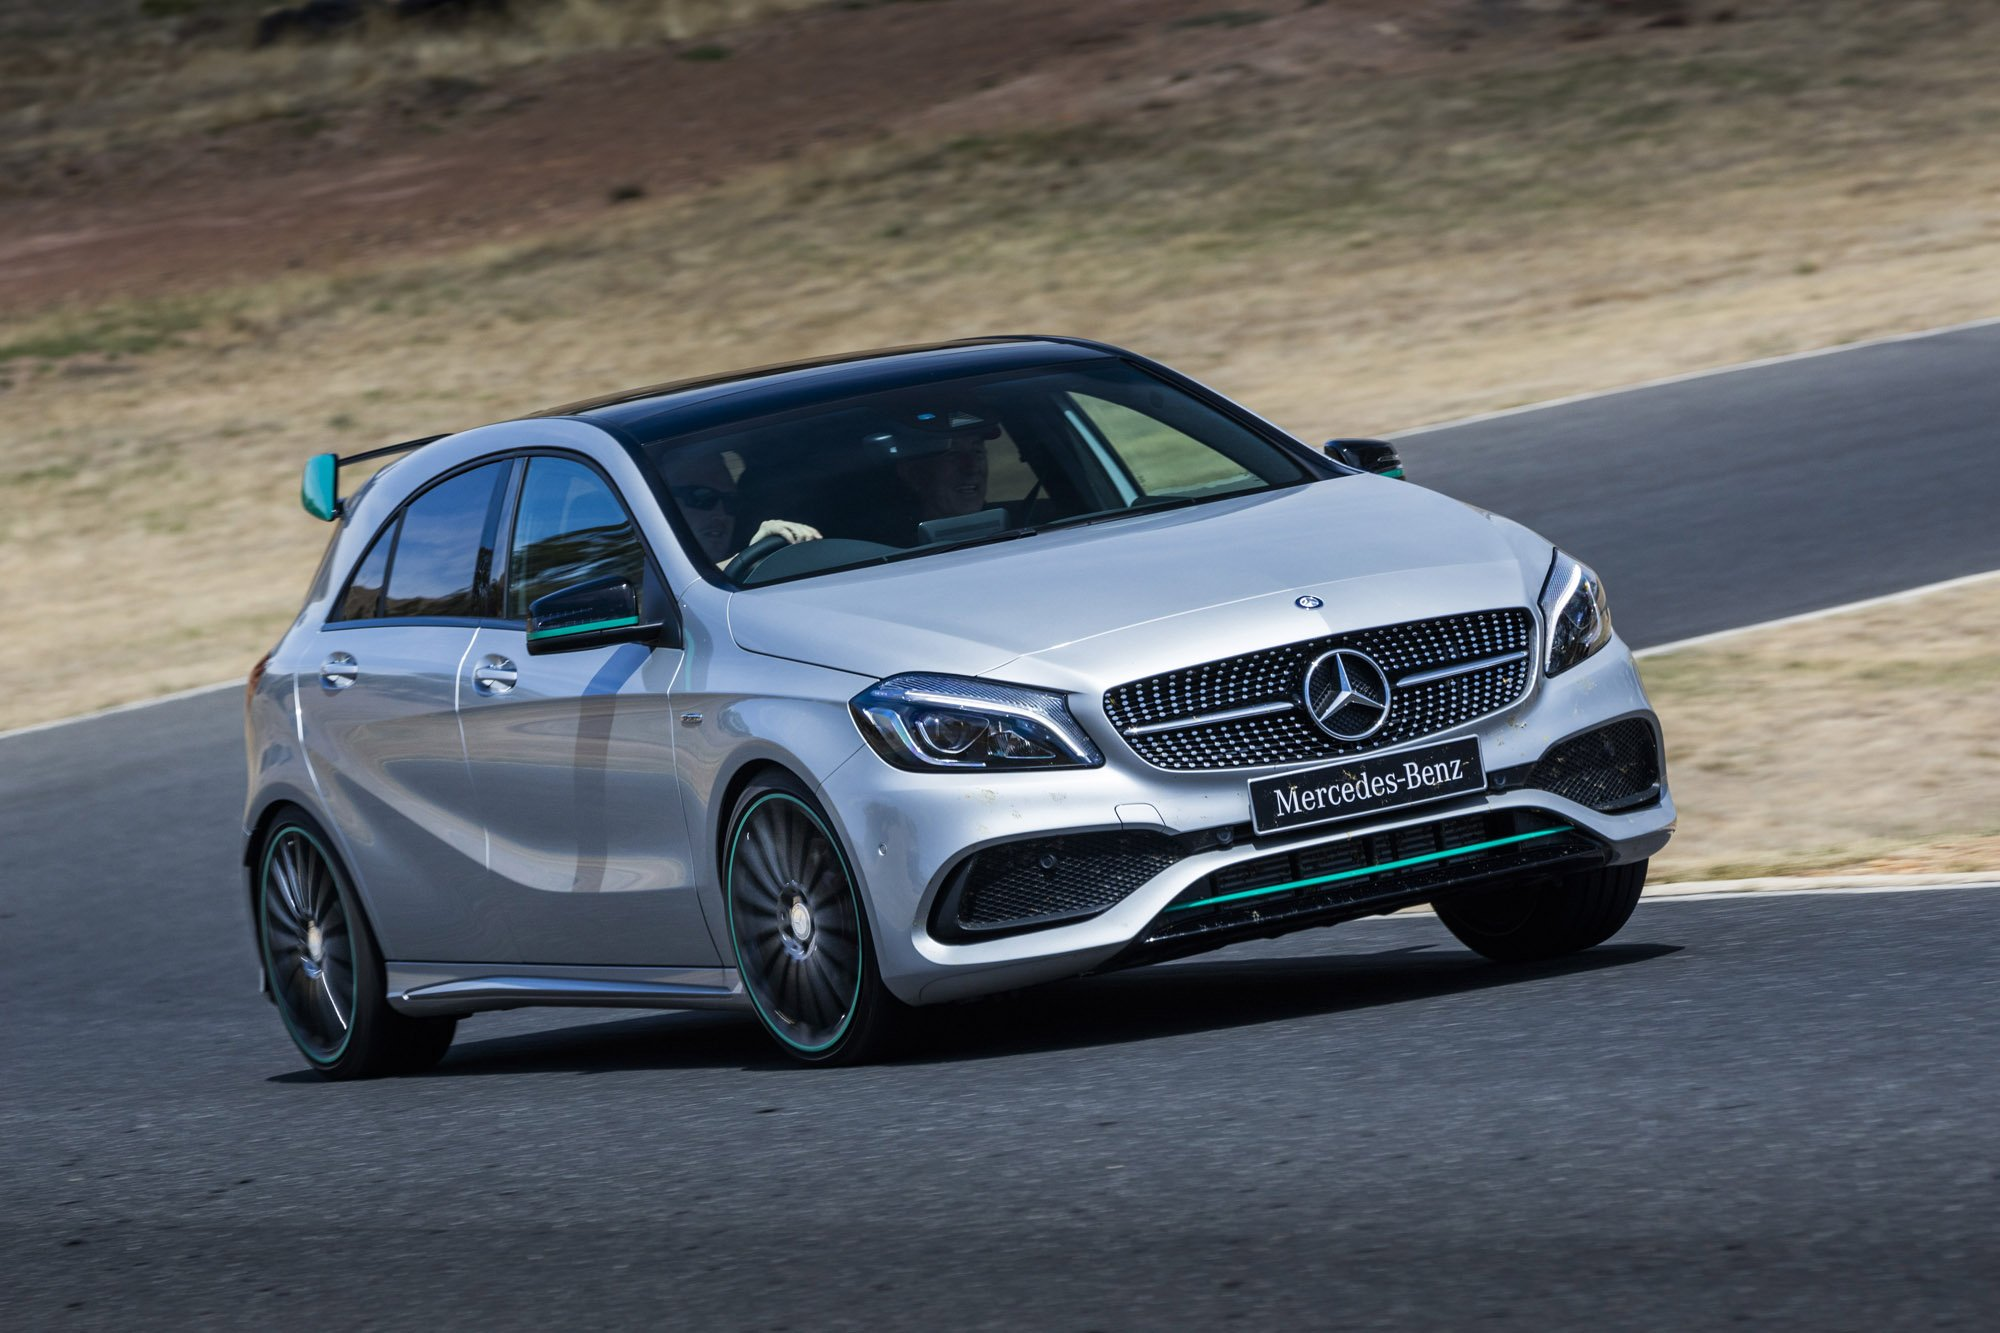 2016 mercedes benz a class review photos caradvice for Mercedes benz ratings reviews